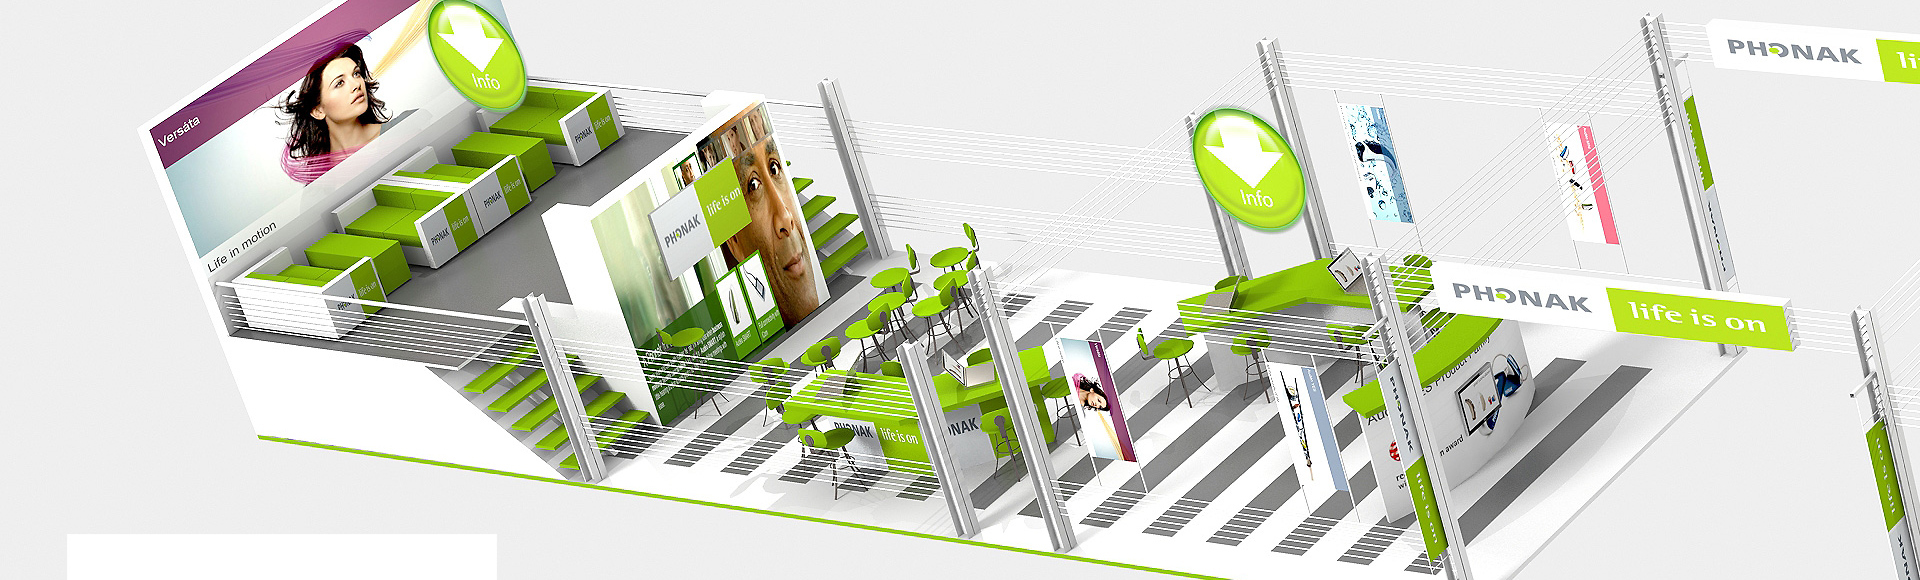 Stand Phonak - Design de stand d'exposition